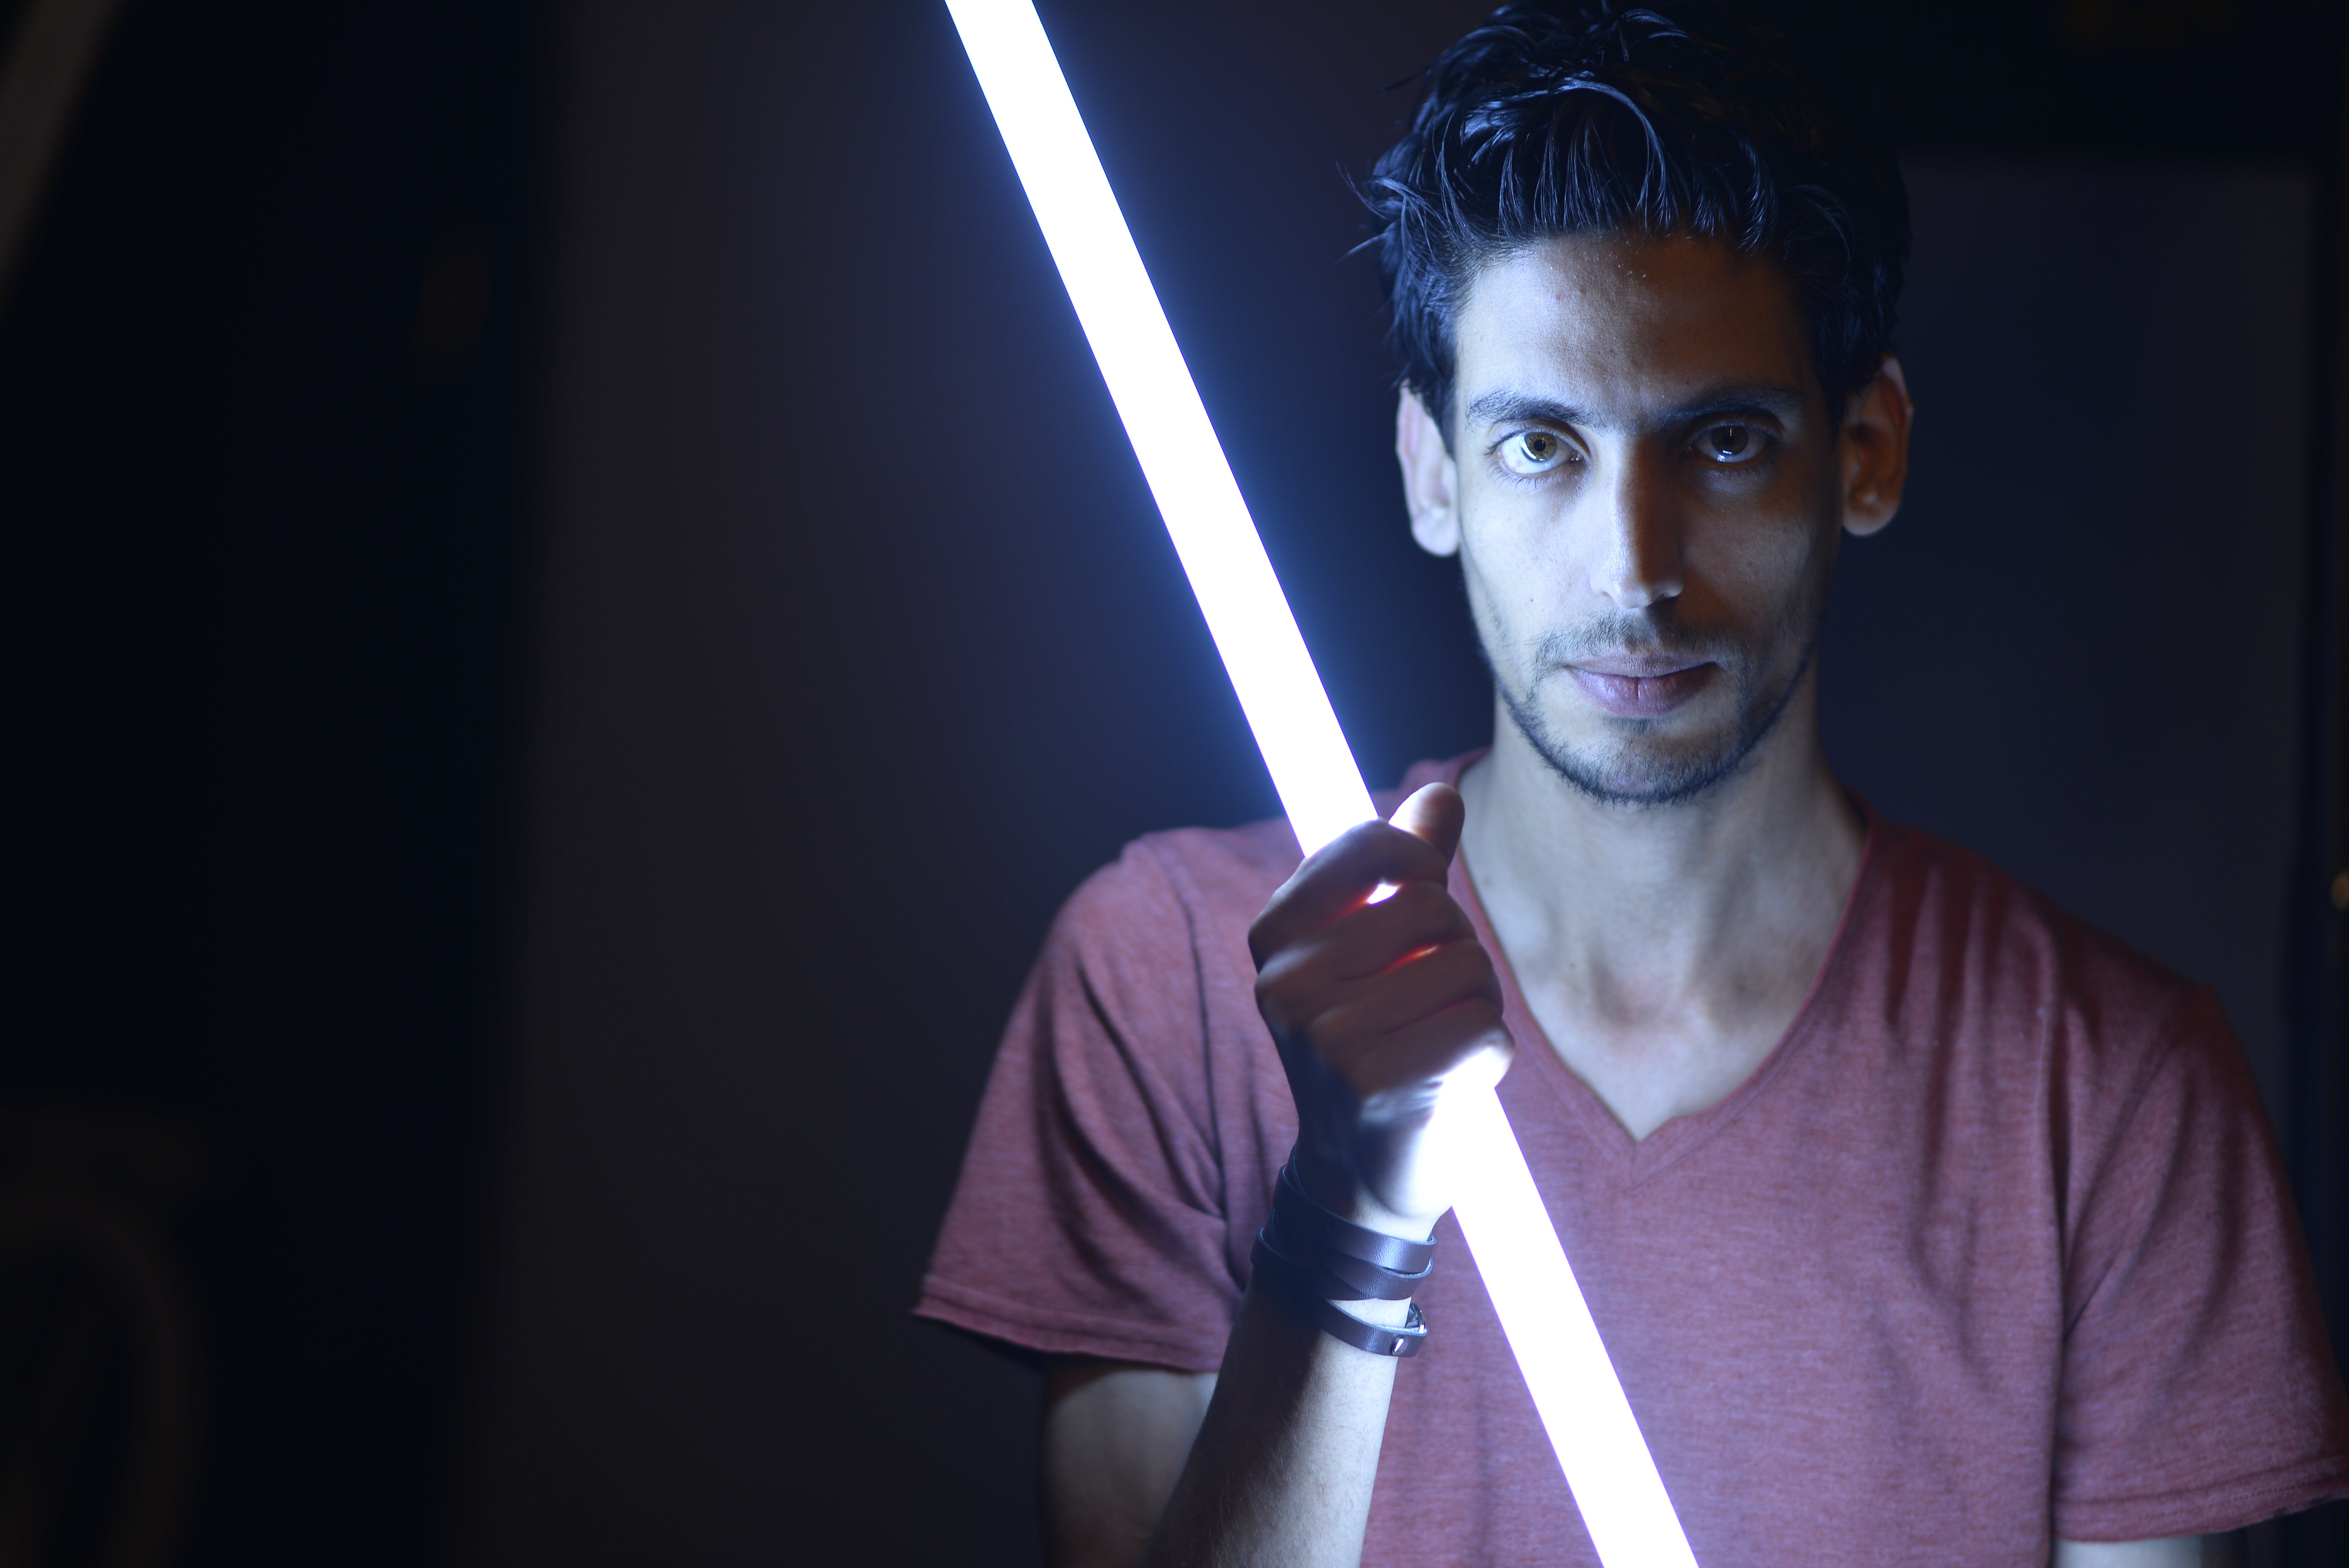 Man Holding Light Saber Sword